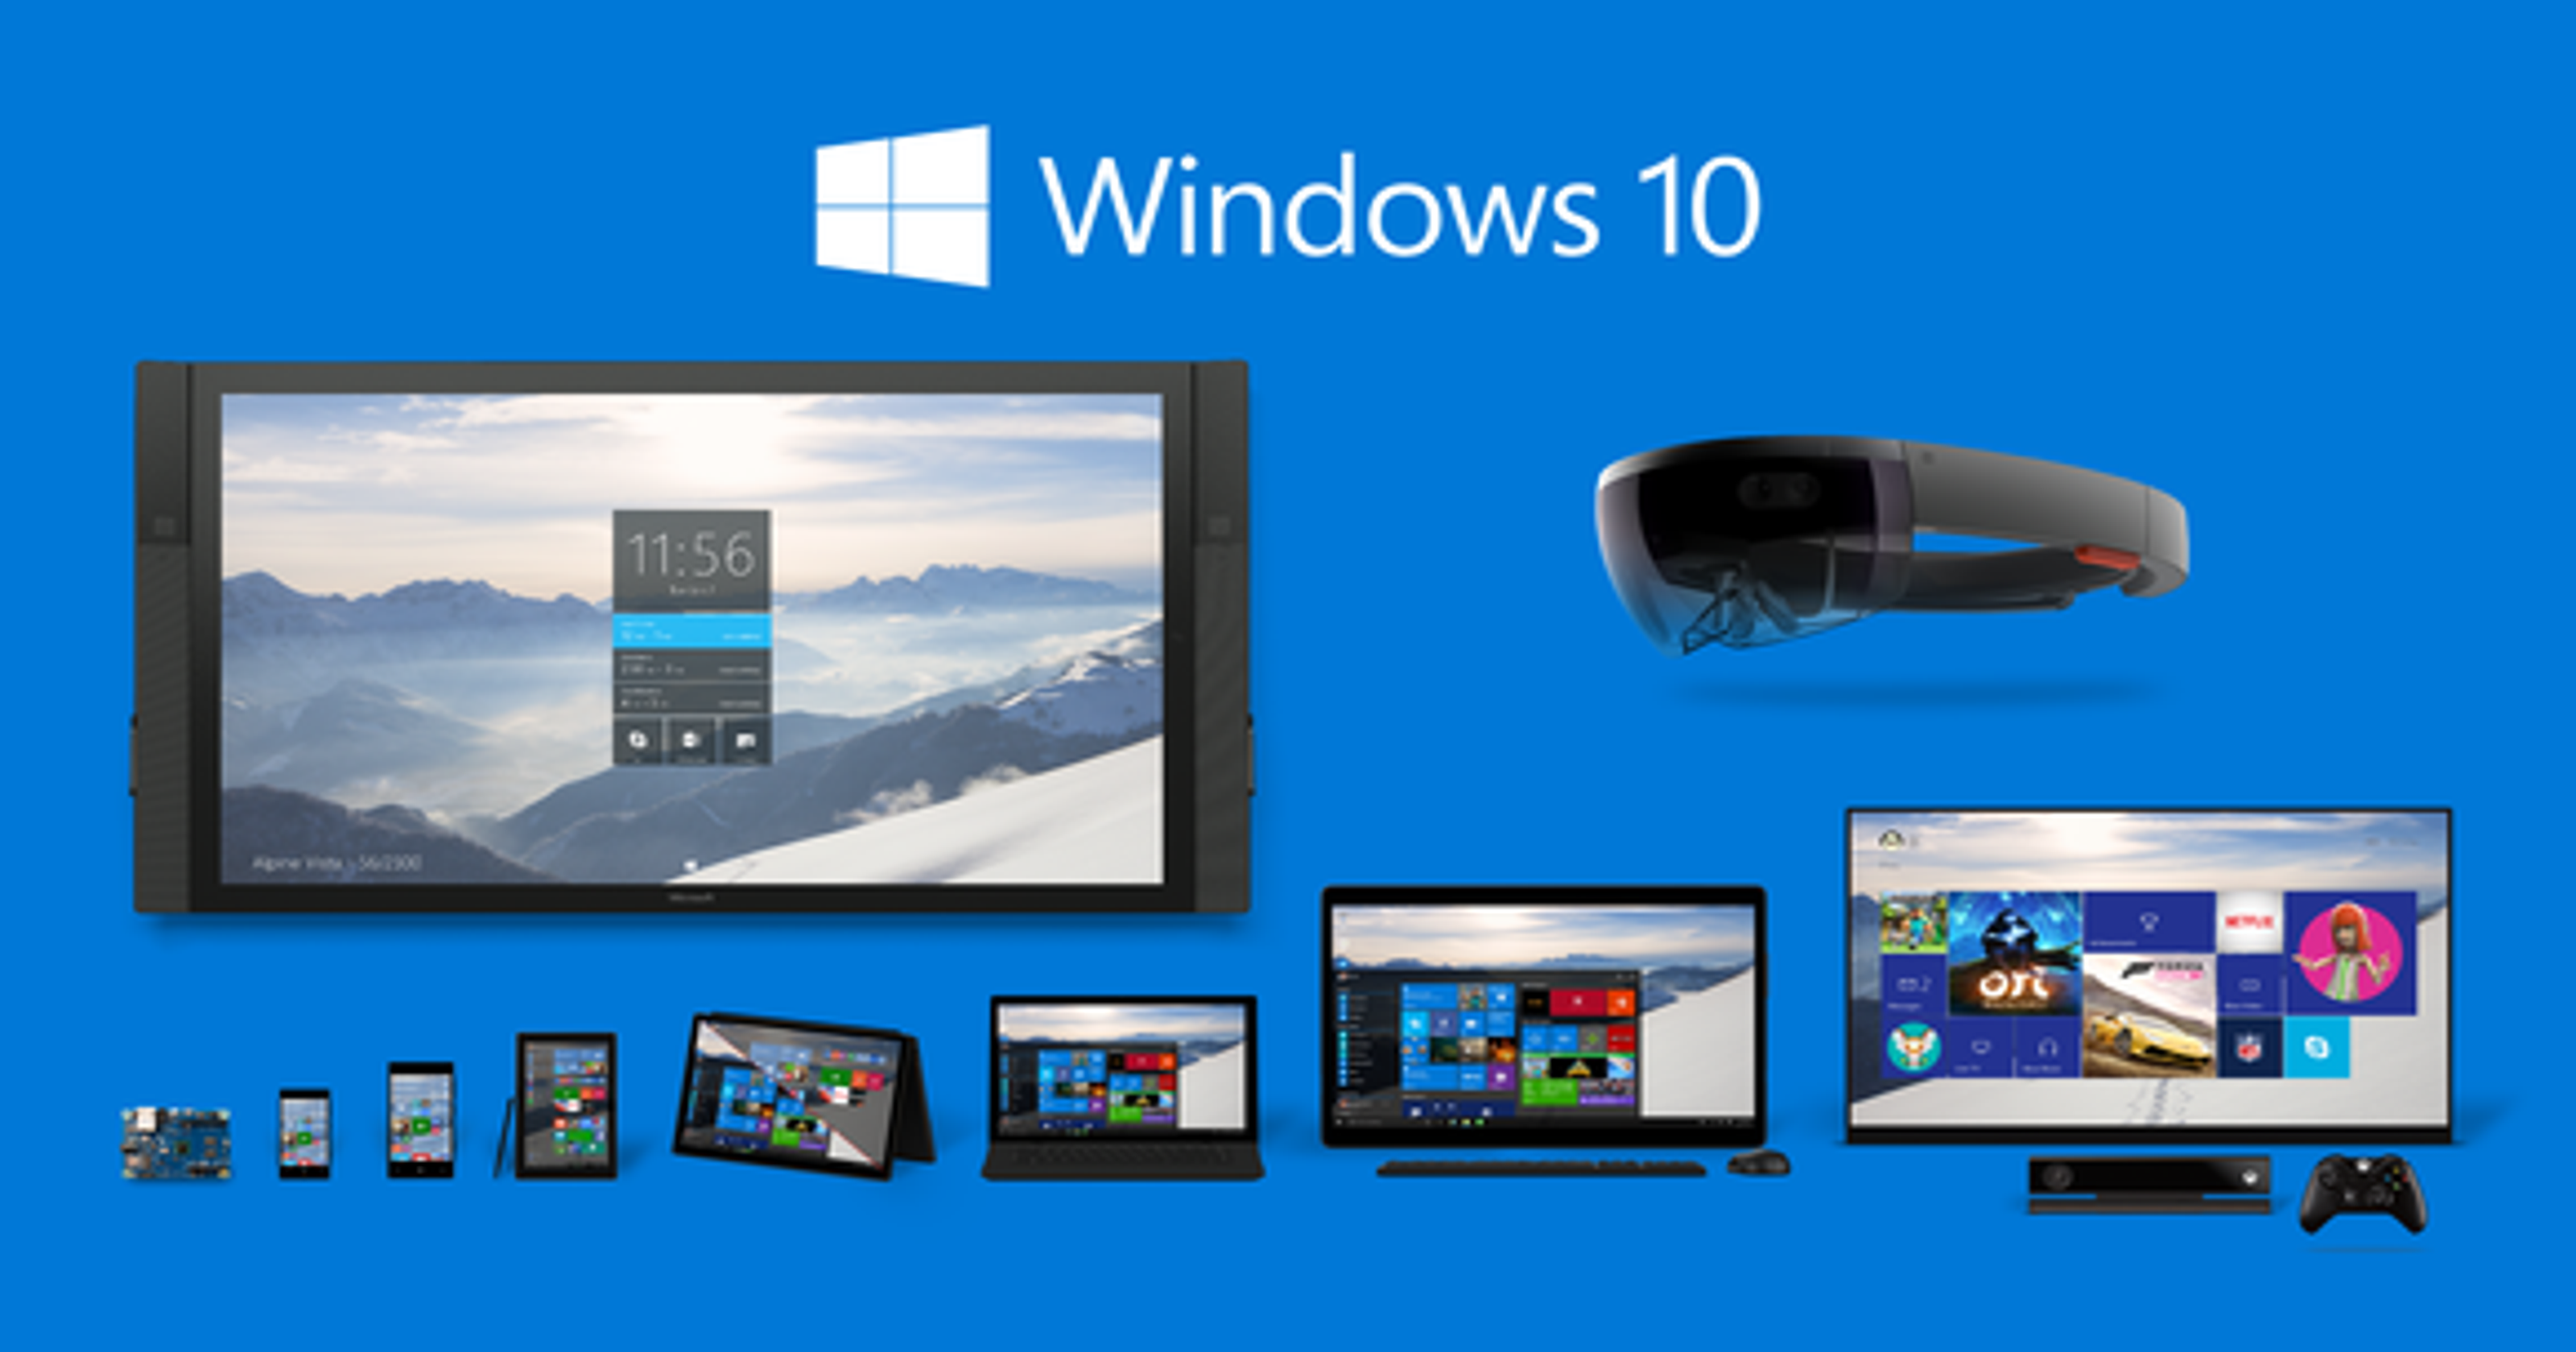 Microsoft's Windows 10 update: 5 new features to try